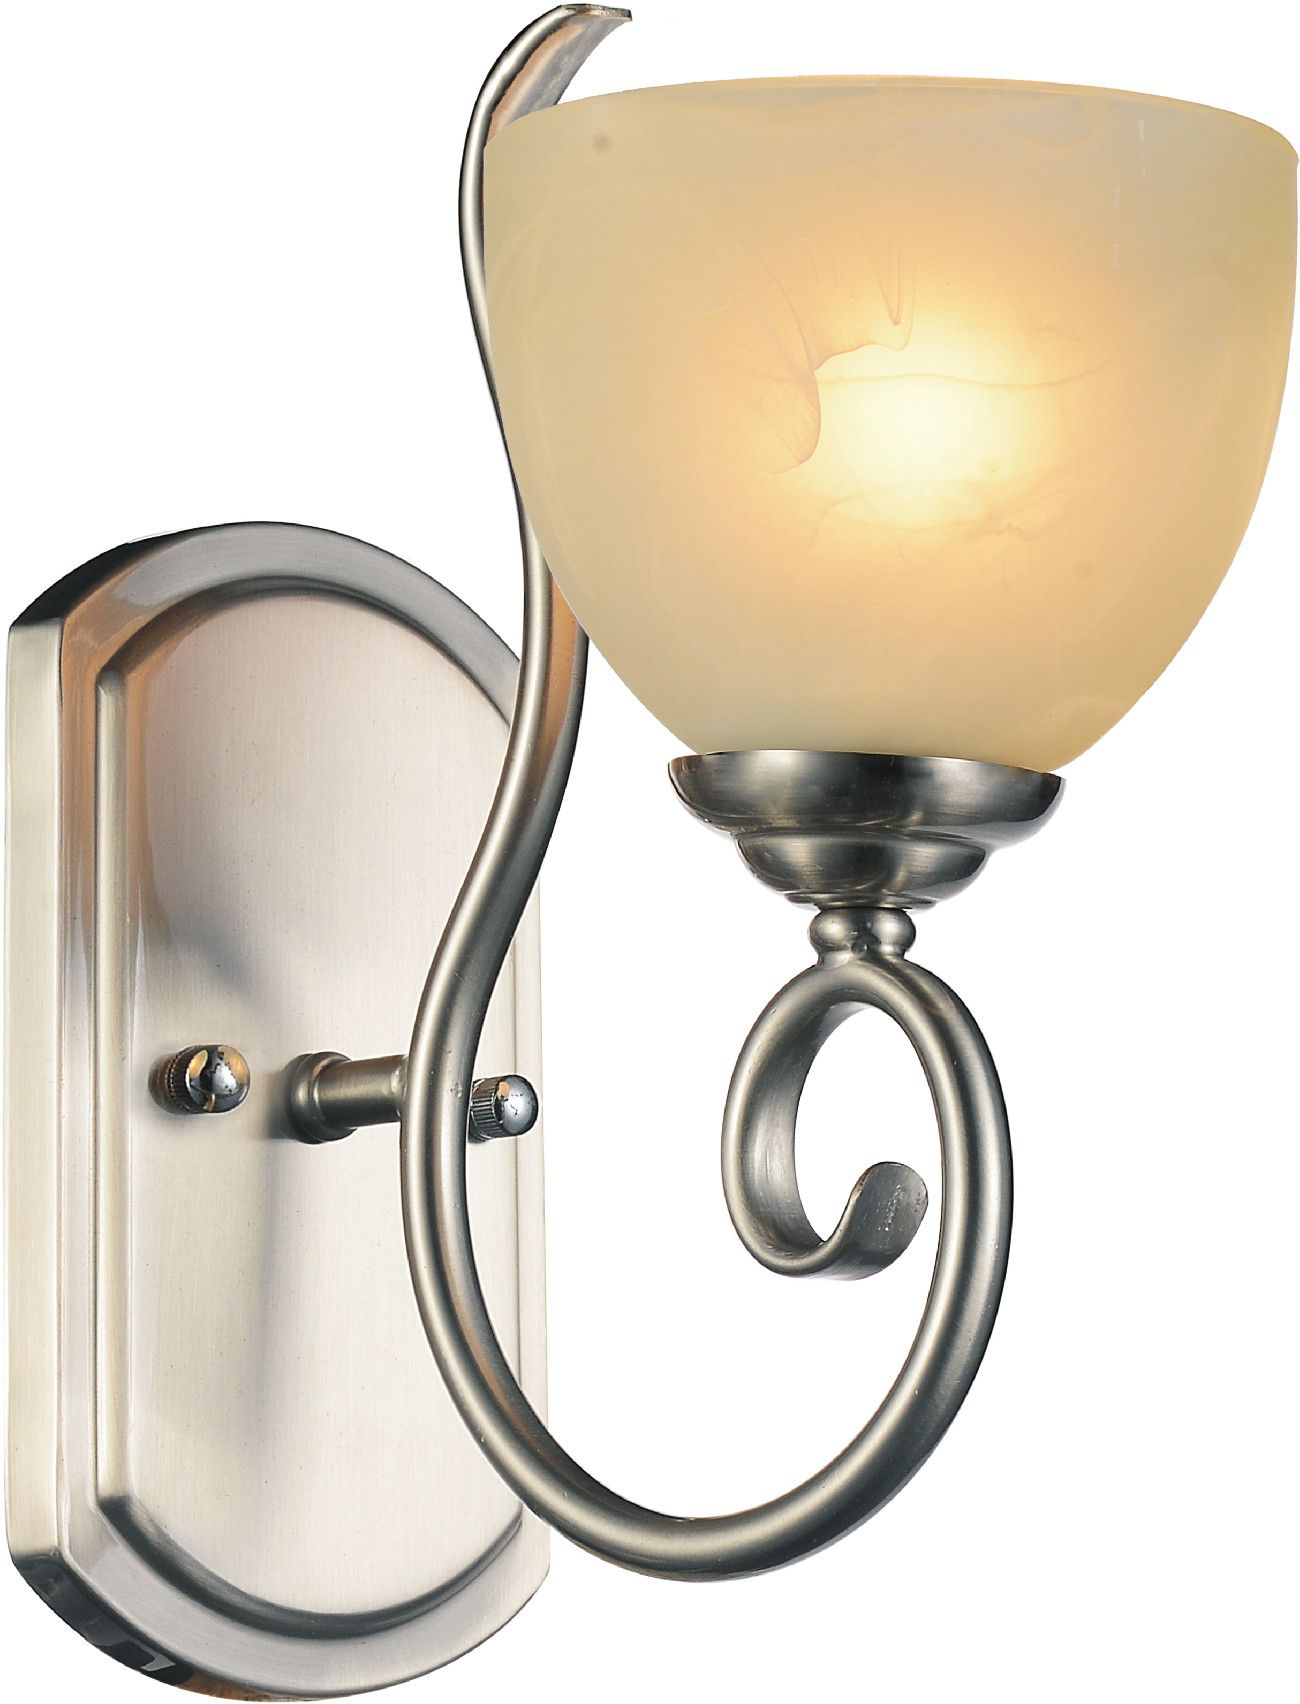 Selena 1 Light Wall Sconce